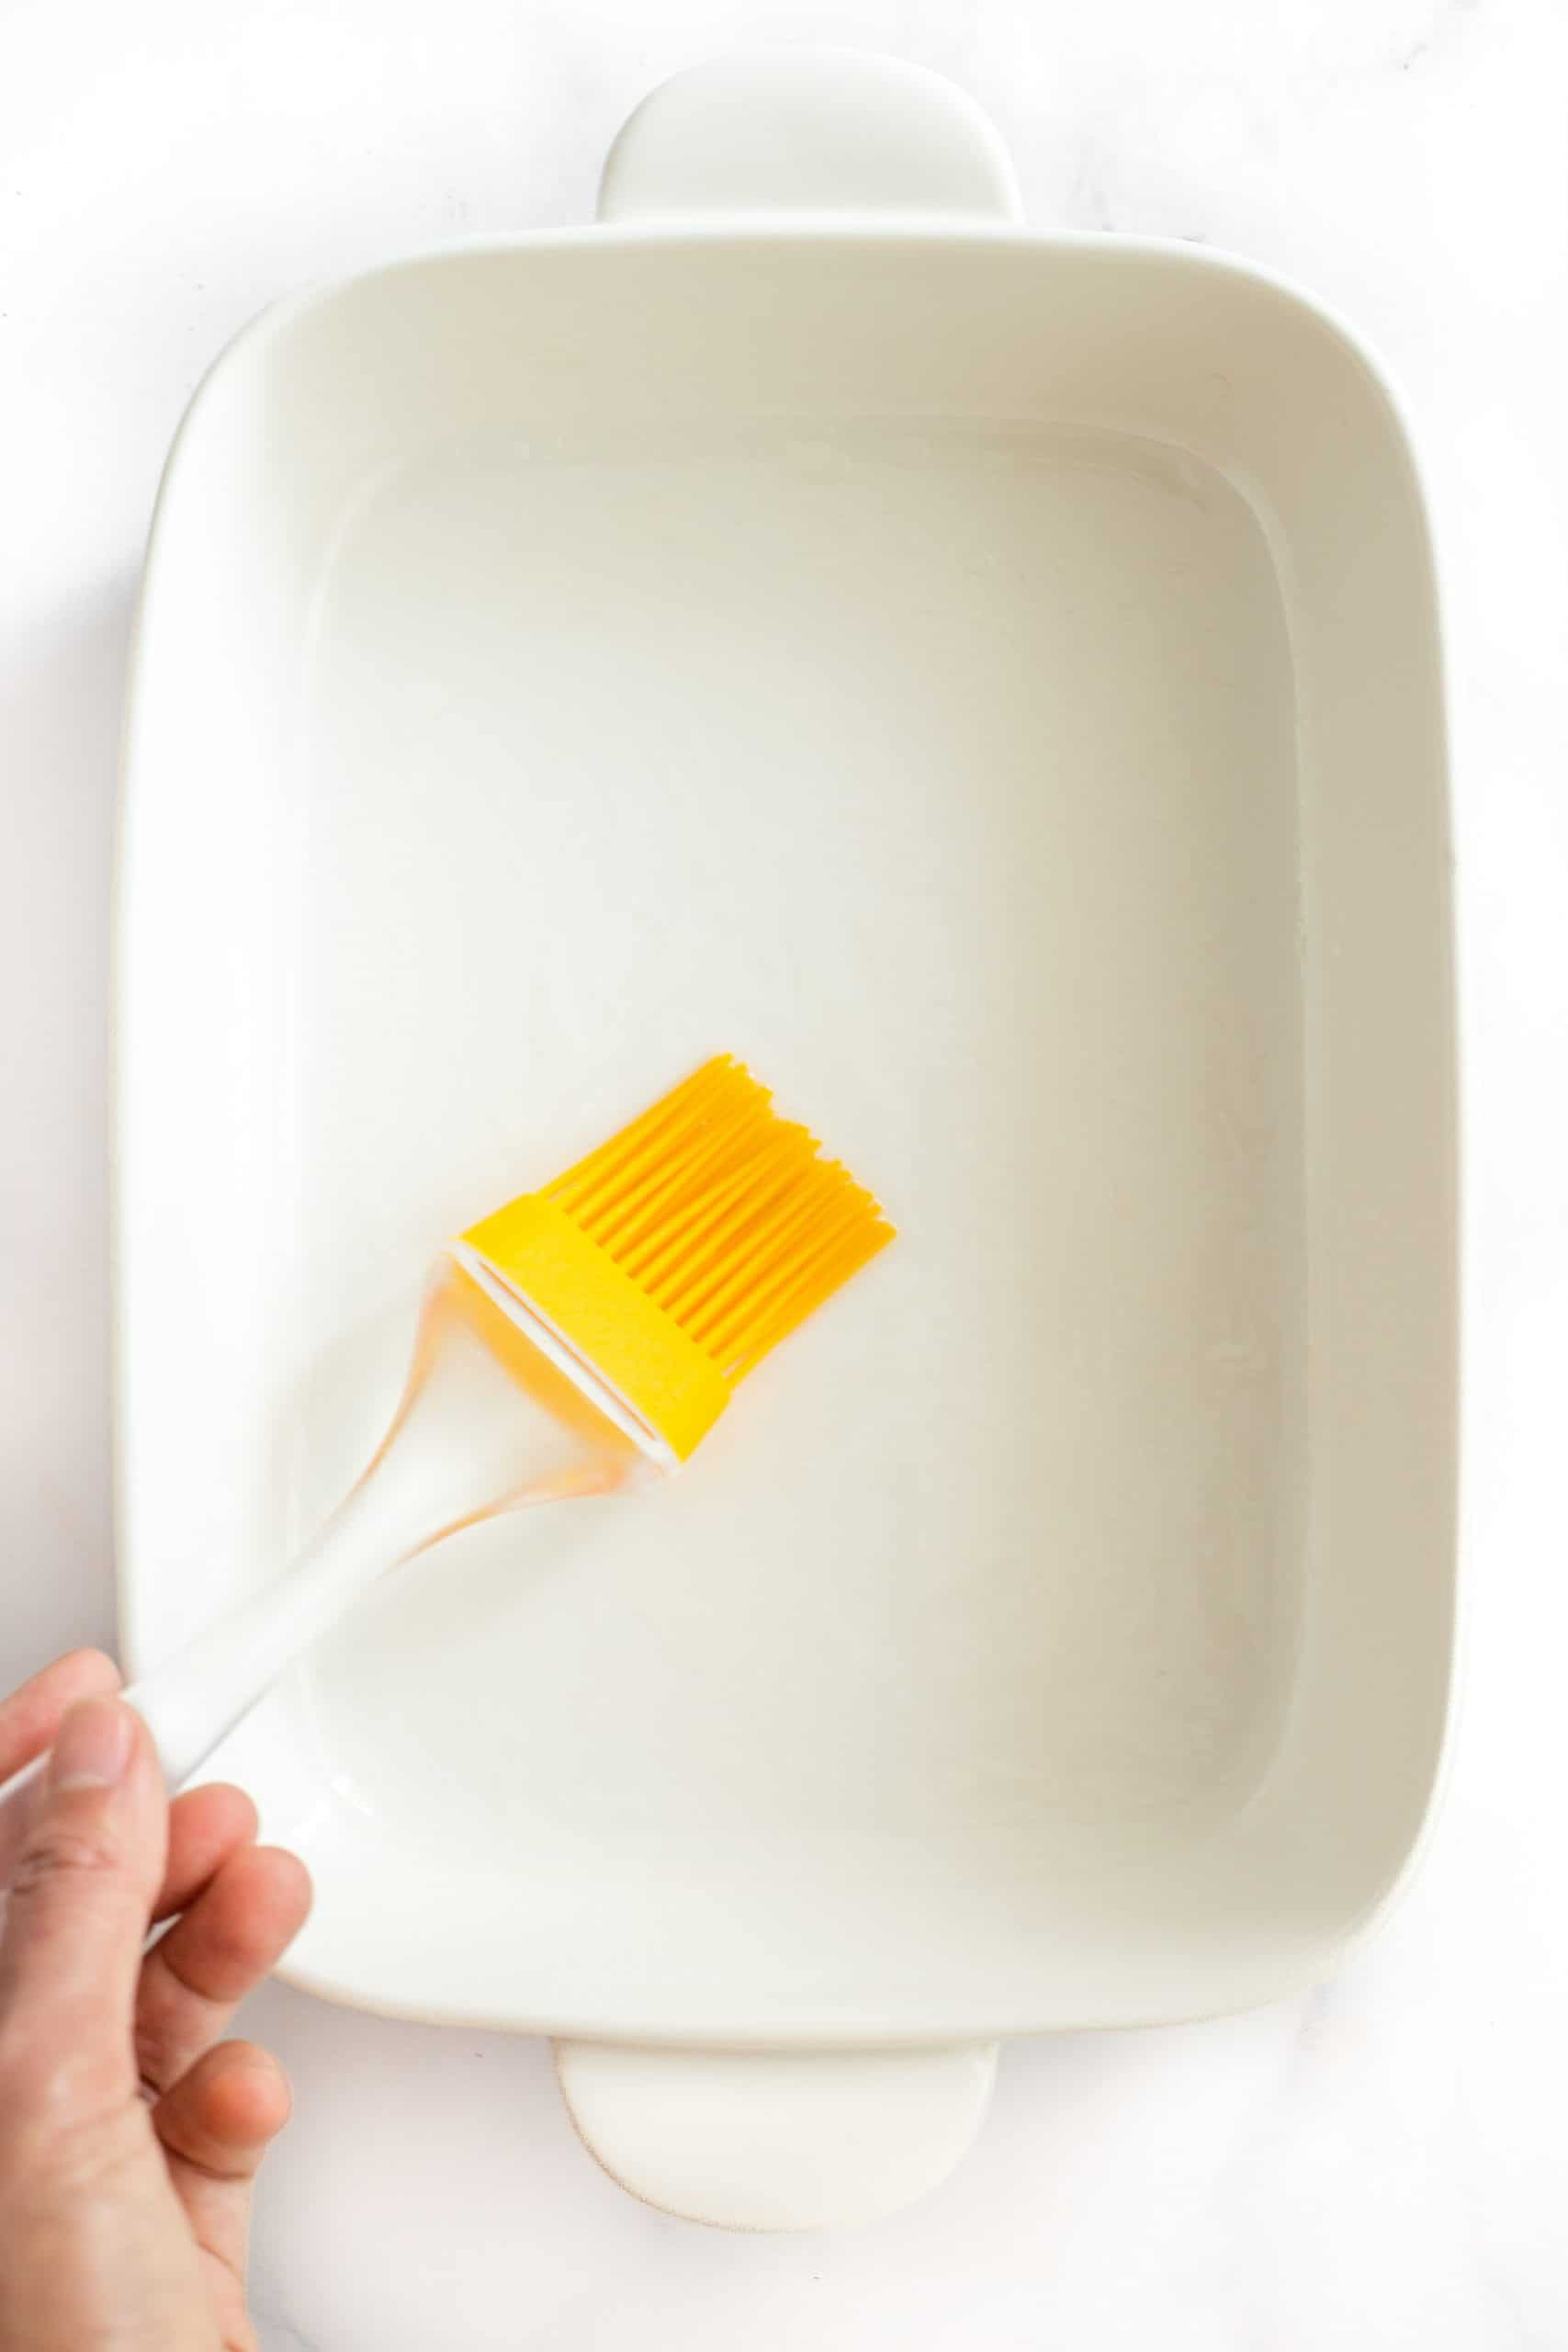 Greasing a casserole dish with oil.